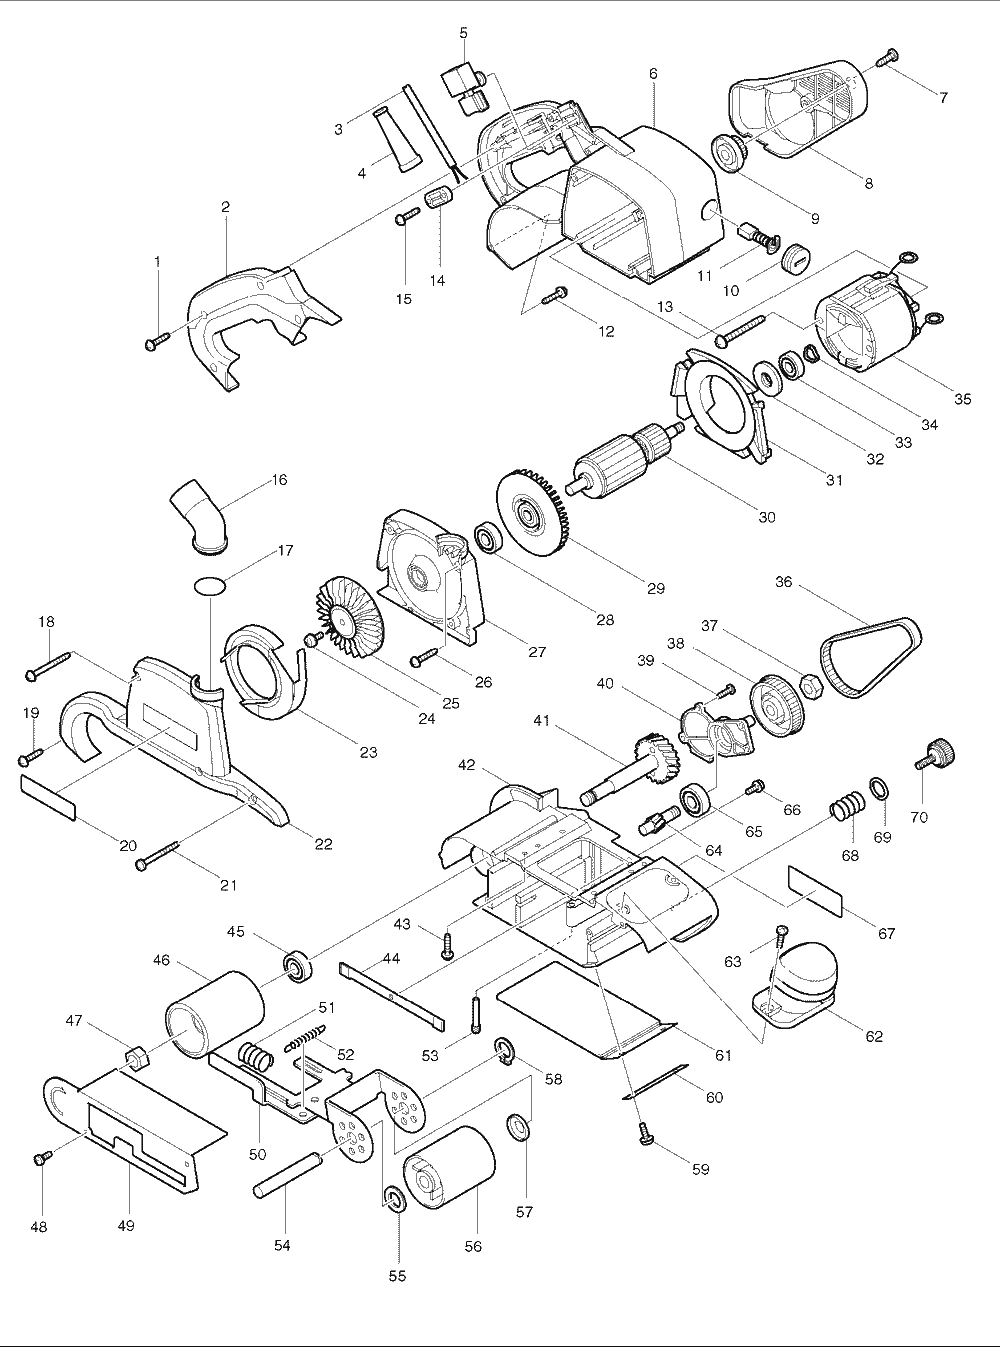 Makita 9921 Parts List Repair Oem With Chicago 7 Polisher Wire Diagram Schematic